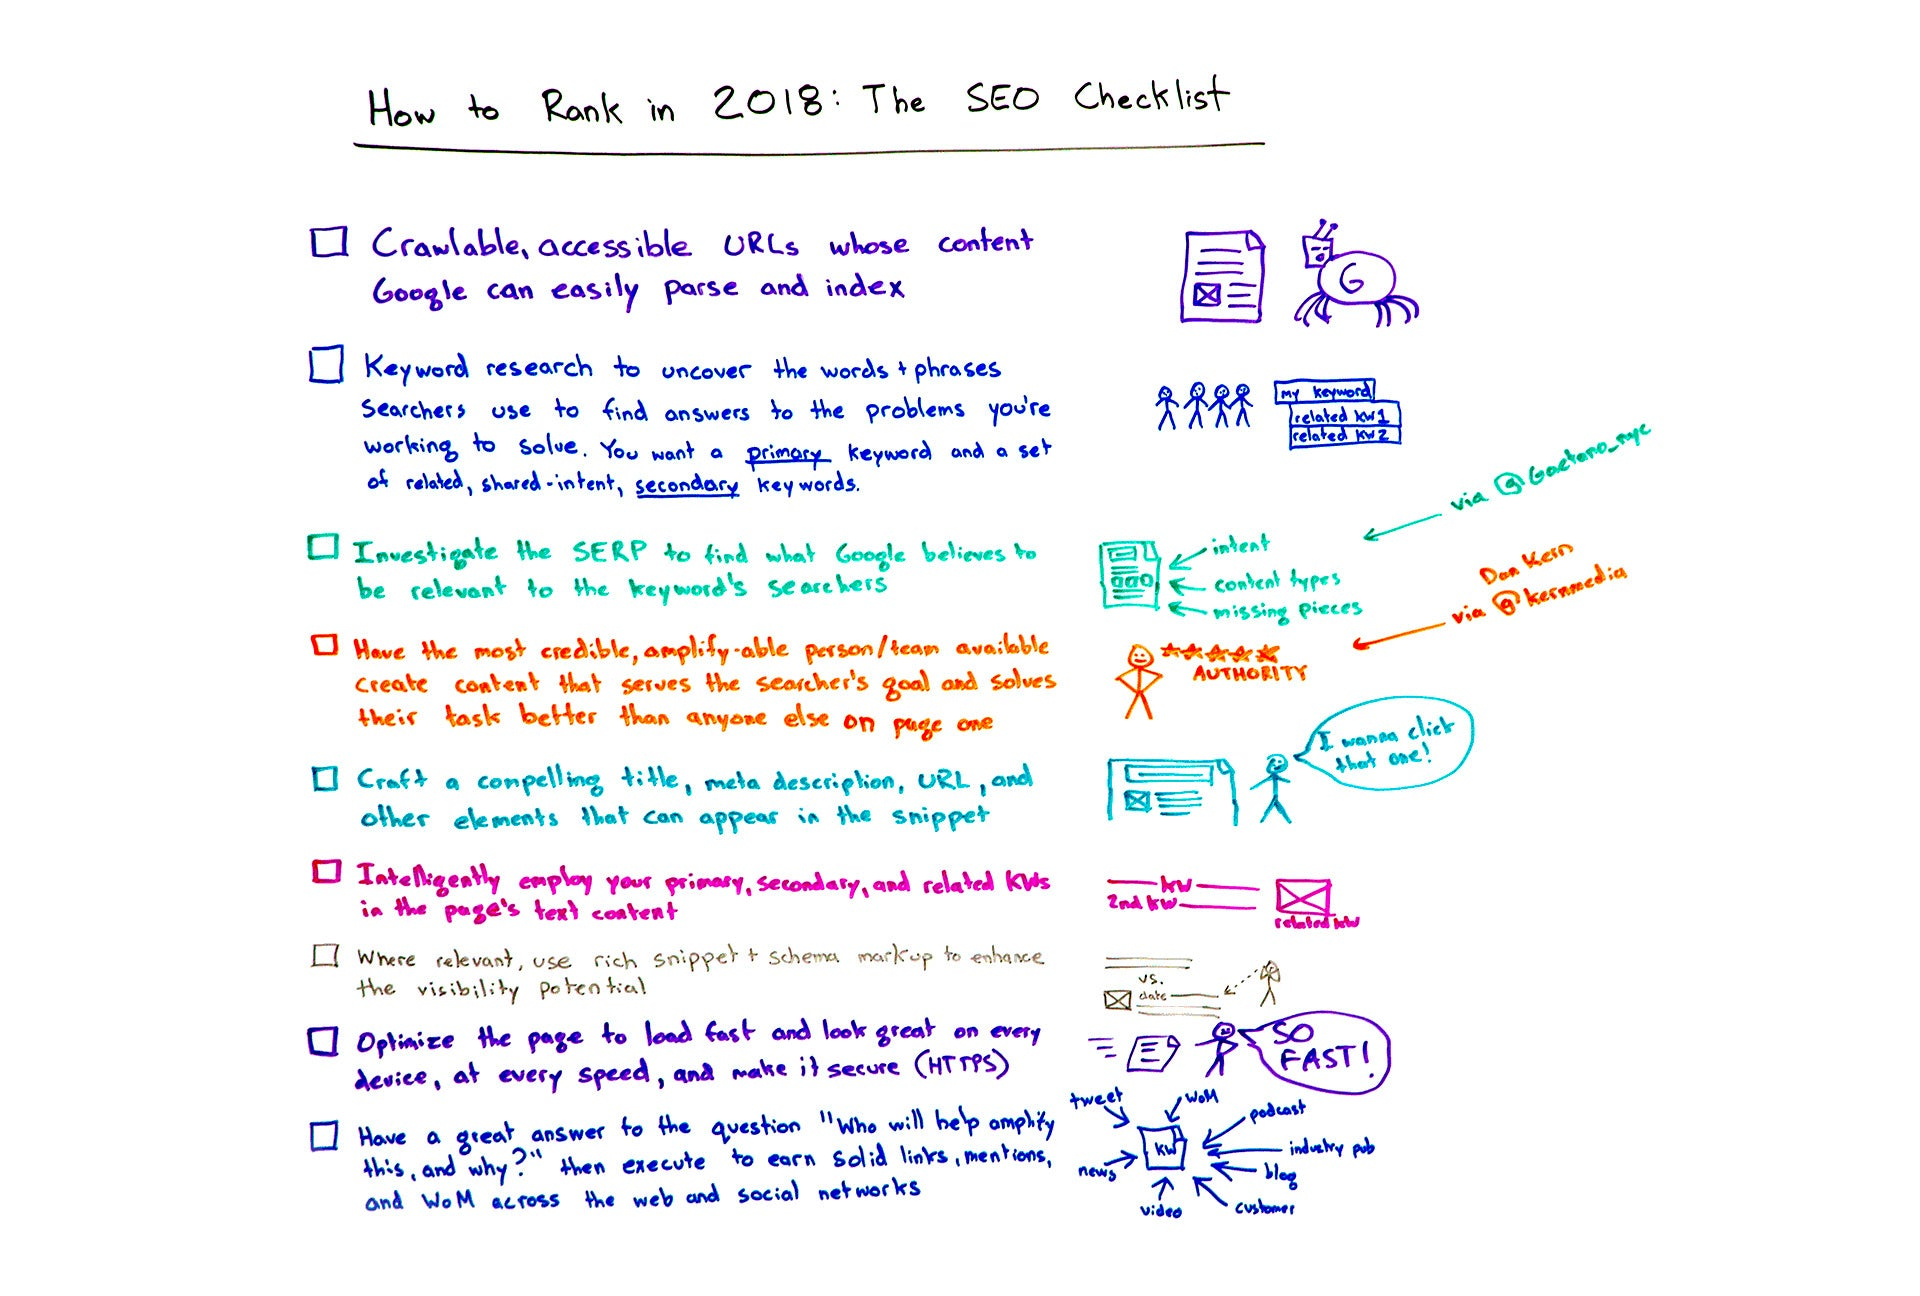 Moz On-Page SEO - 2018 SEO Checklist by Rand Fishkin